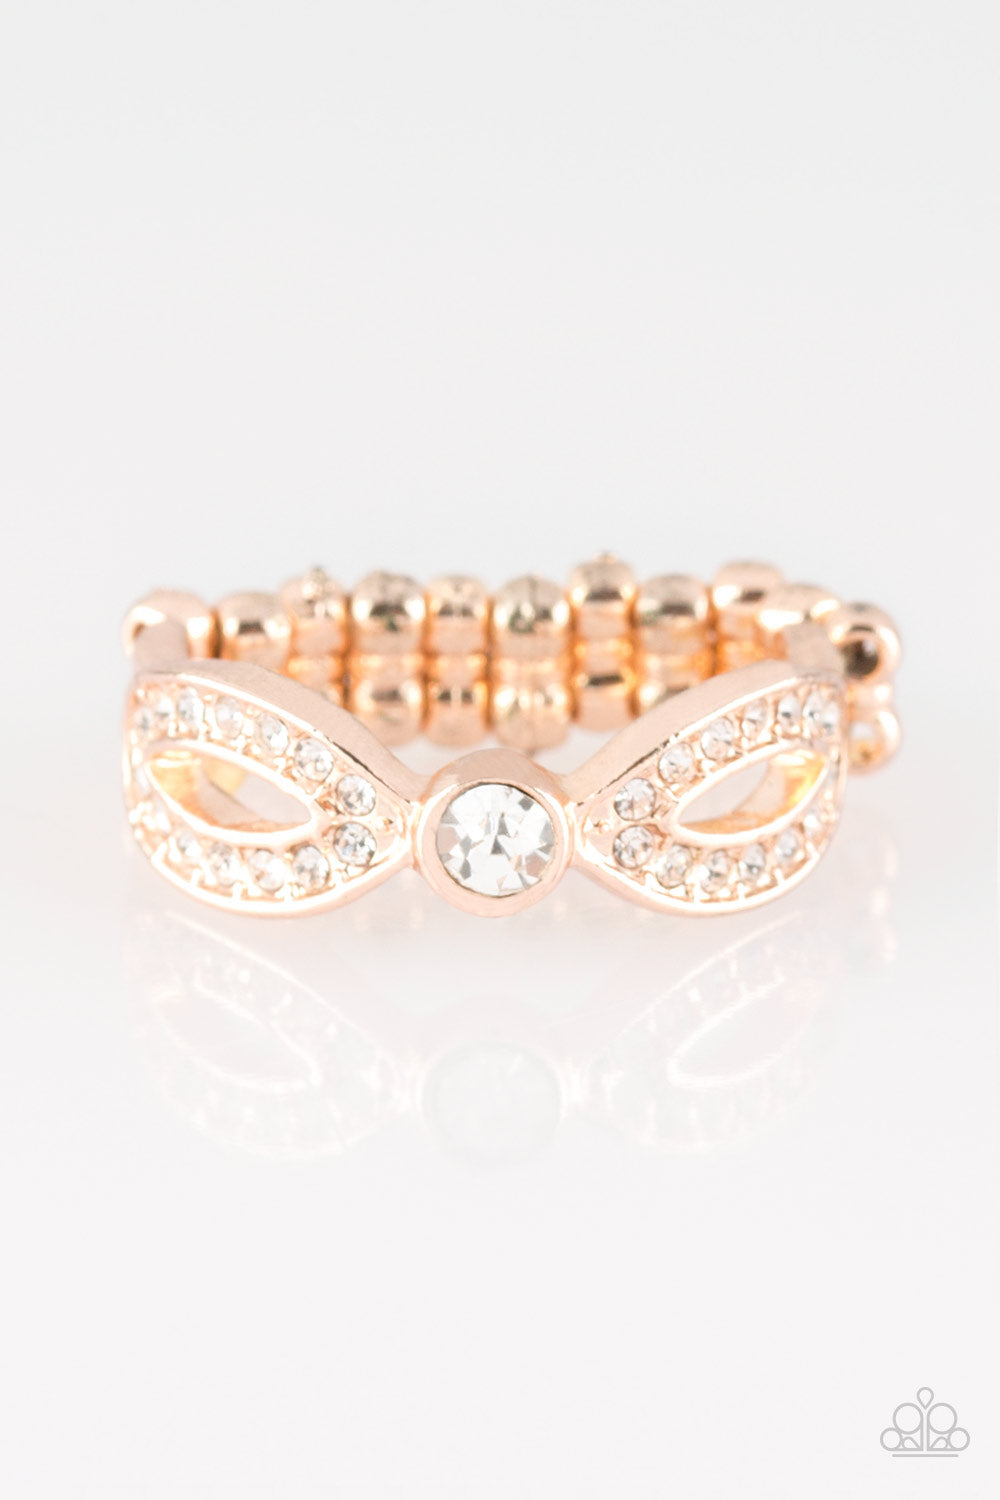 five-dollar-jewelry-extra-side-of-elegance-rose-gold-paparazzi-accessories